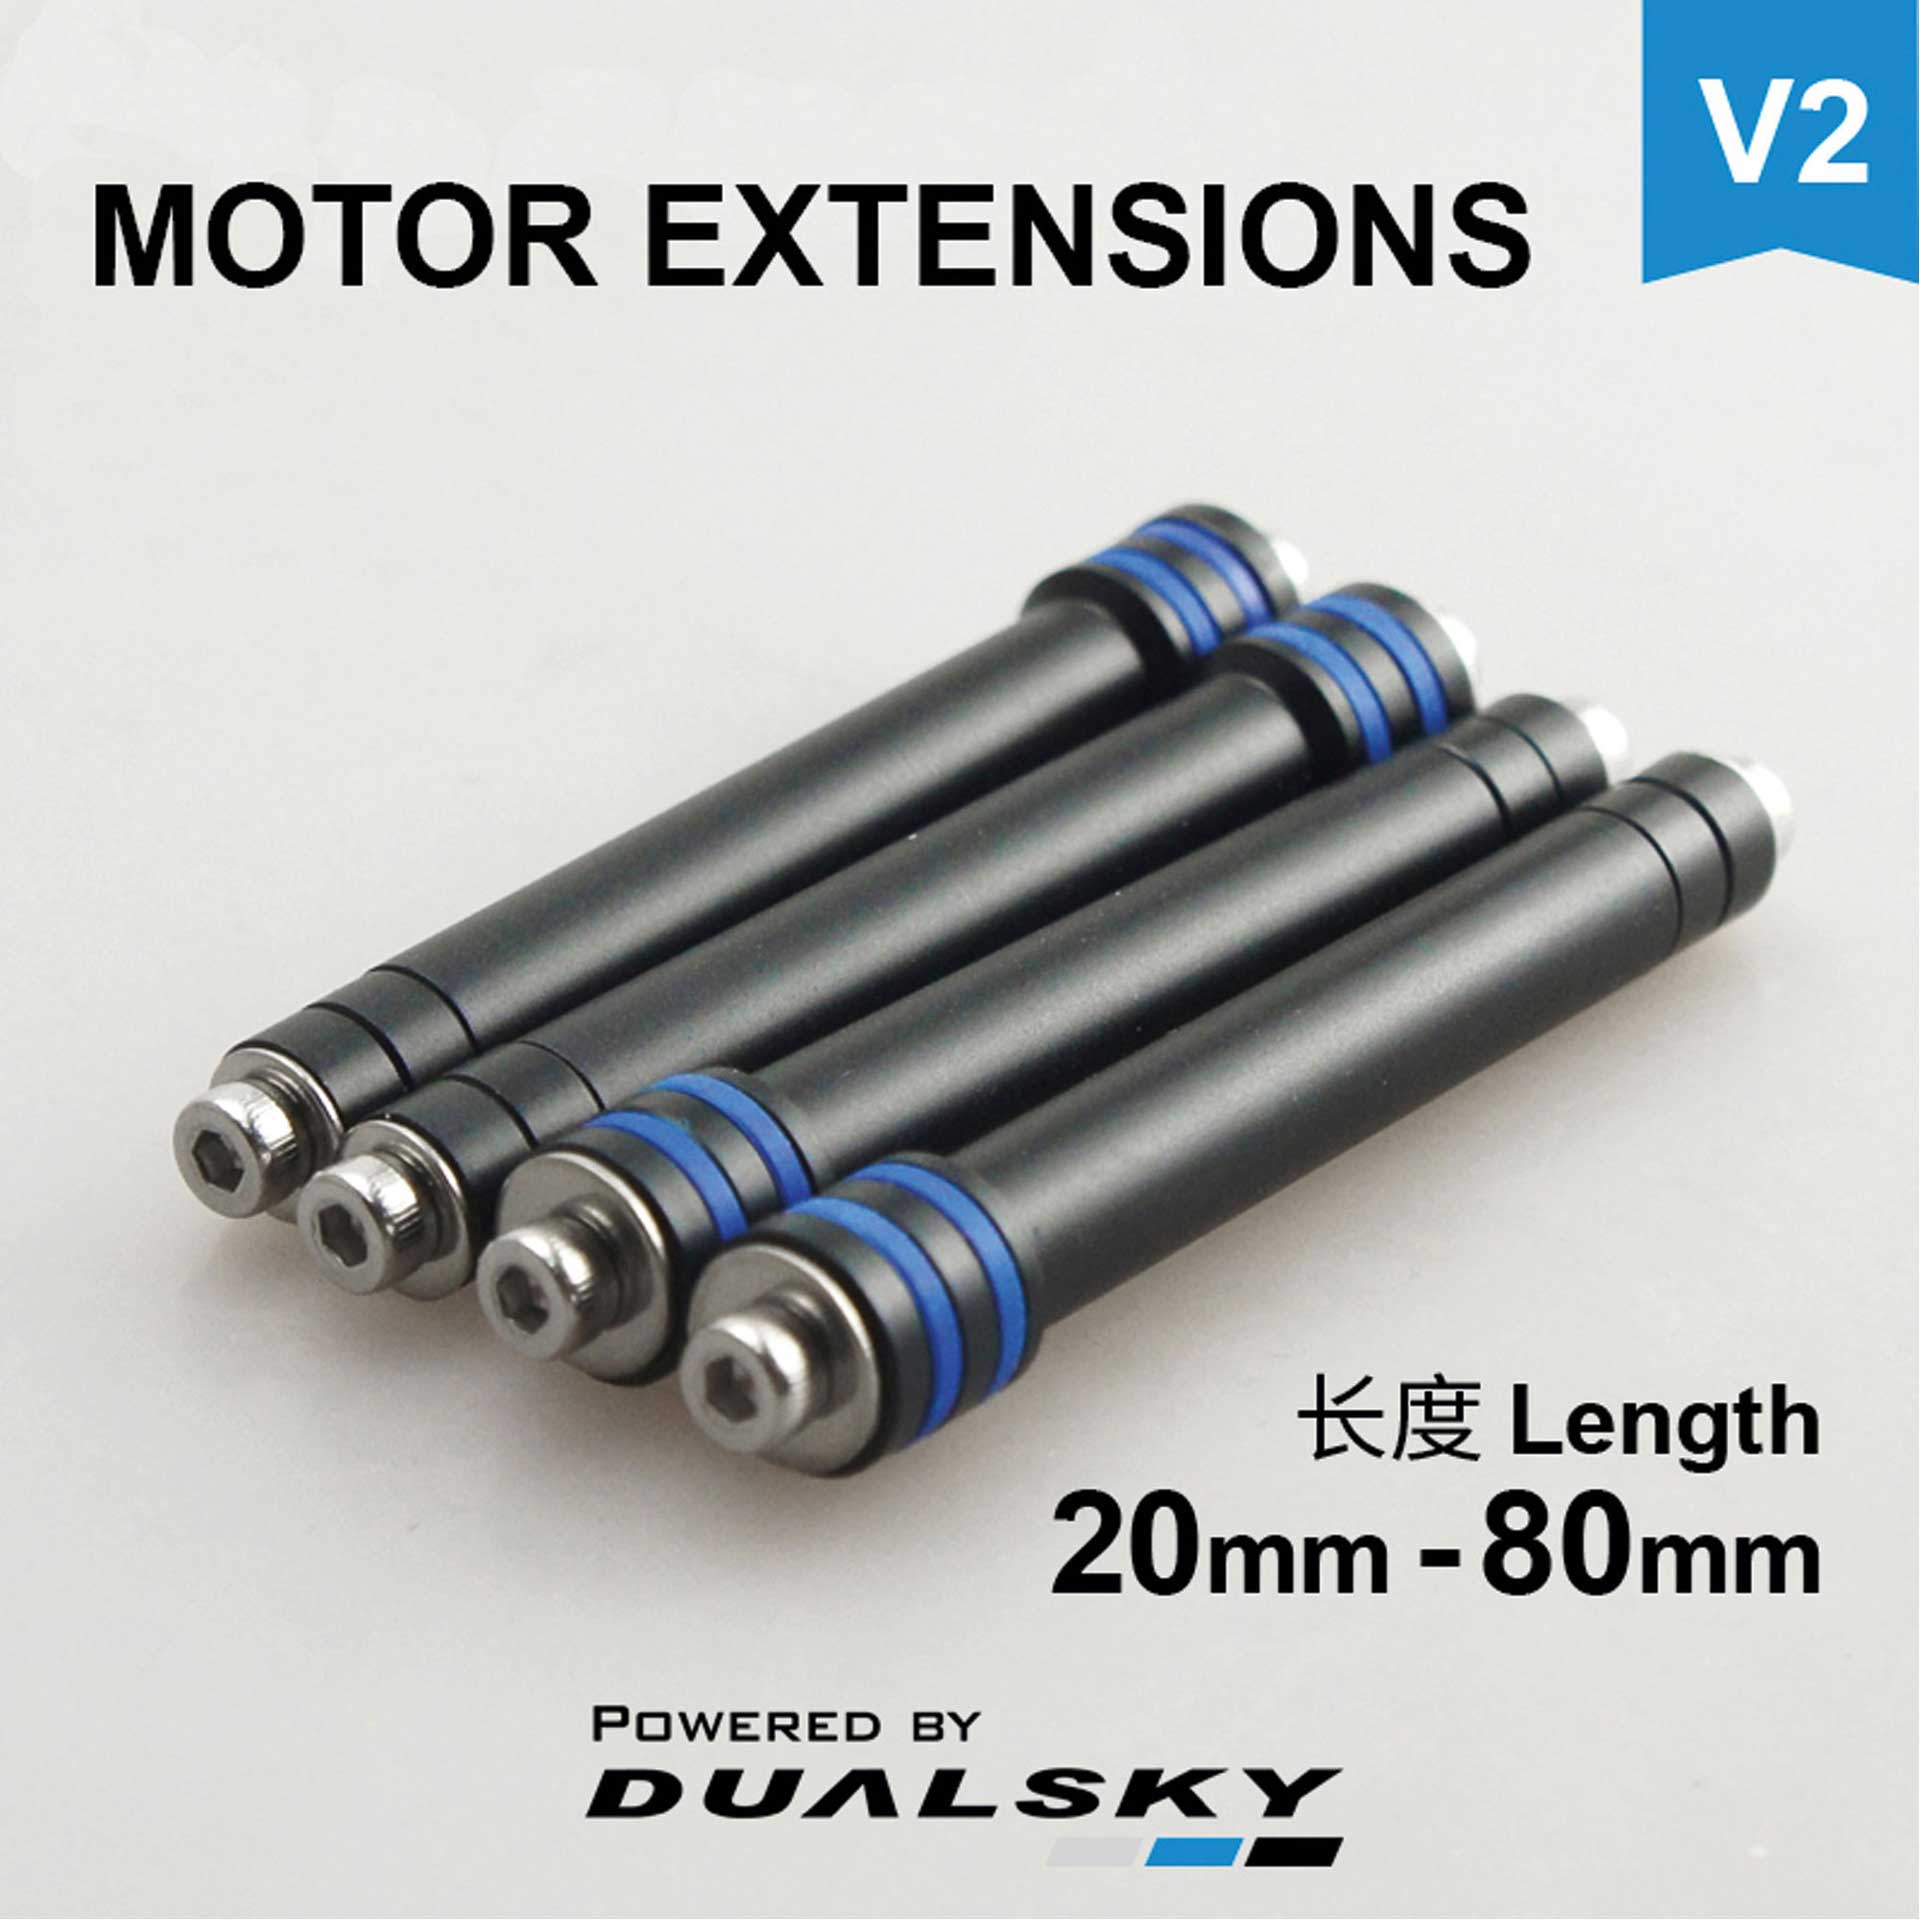 DUALSKY MOTOR EXTENSIONS V2 ME3-20 LENGTH 2 TO 20MM ADJUSTABLE WITH SCREWS stand off